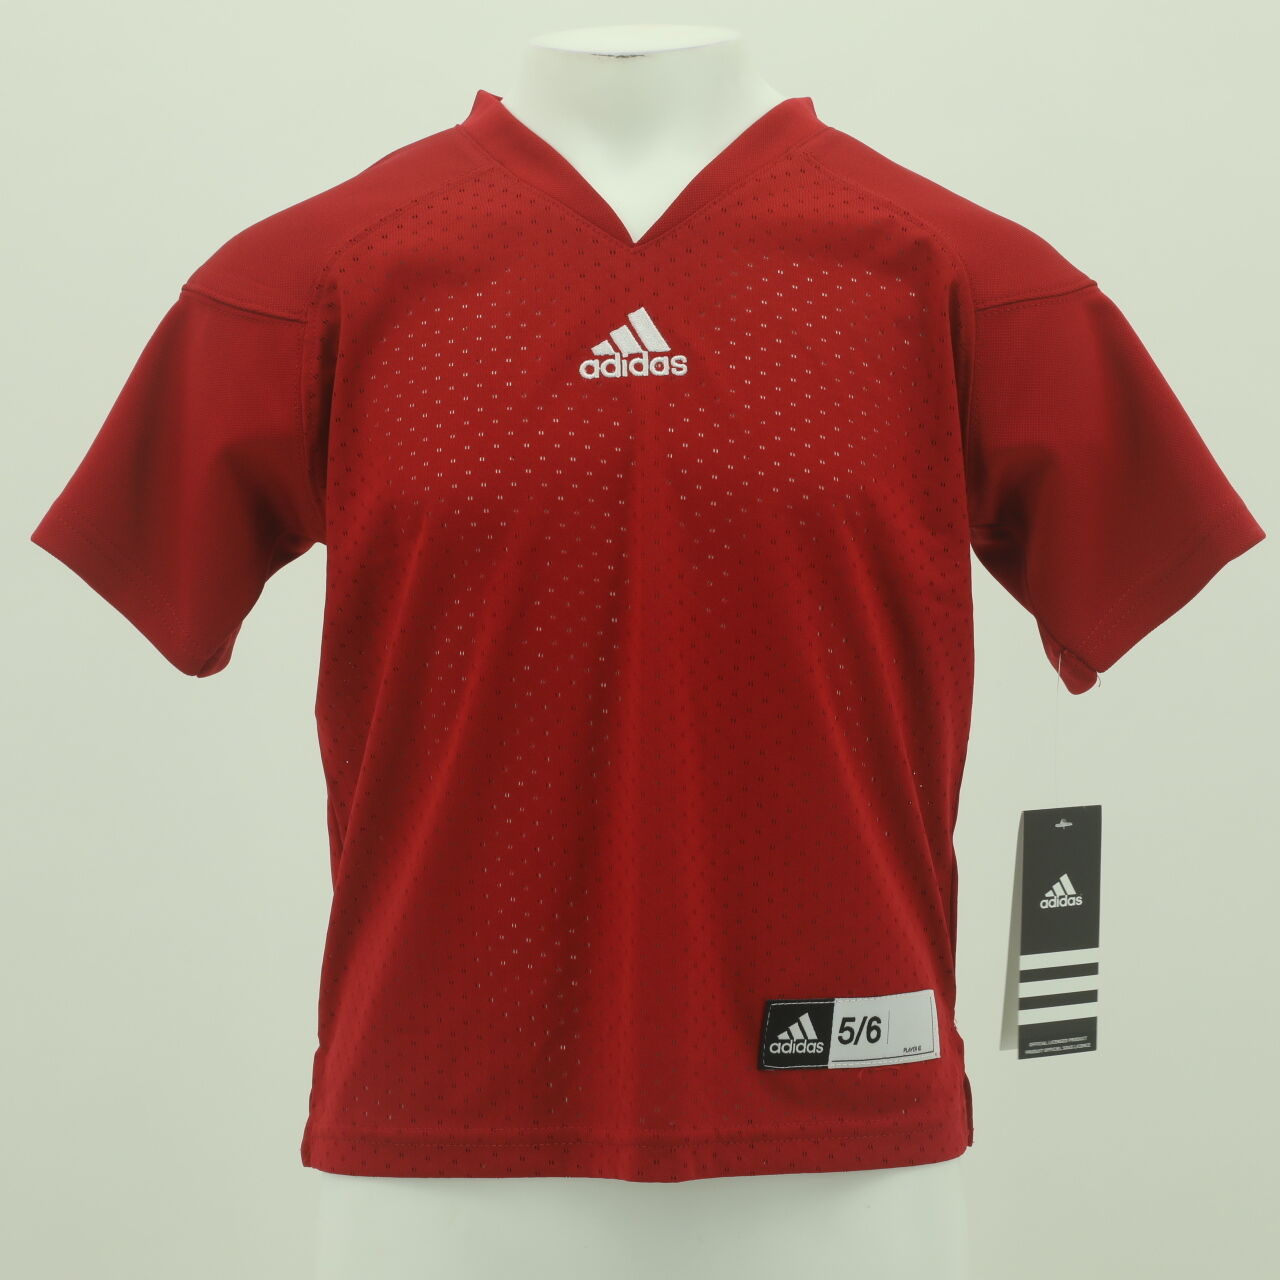 51d6cbcd18c Details about Indiana Hoosiers Official NCAA Adidas Youth Kids Size Blank  Football Jersey New